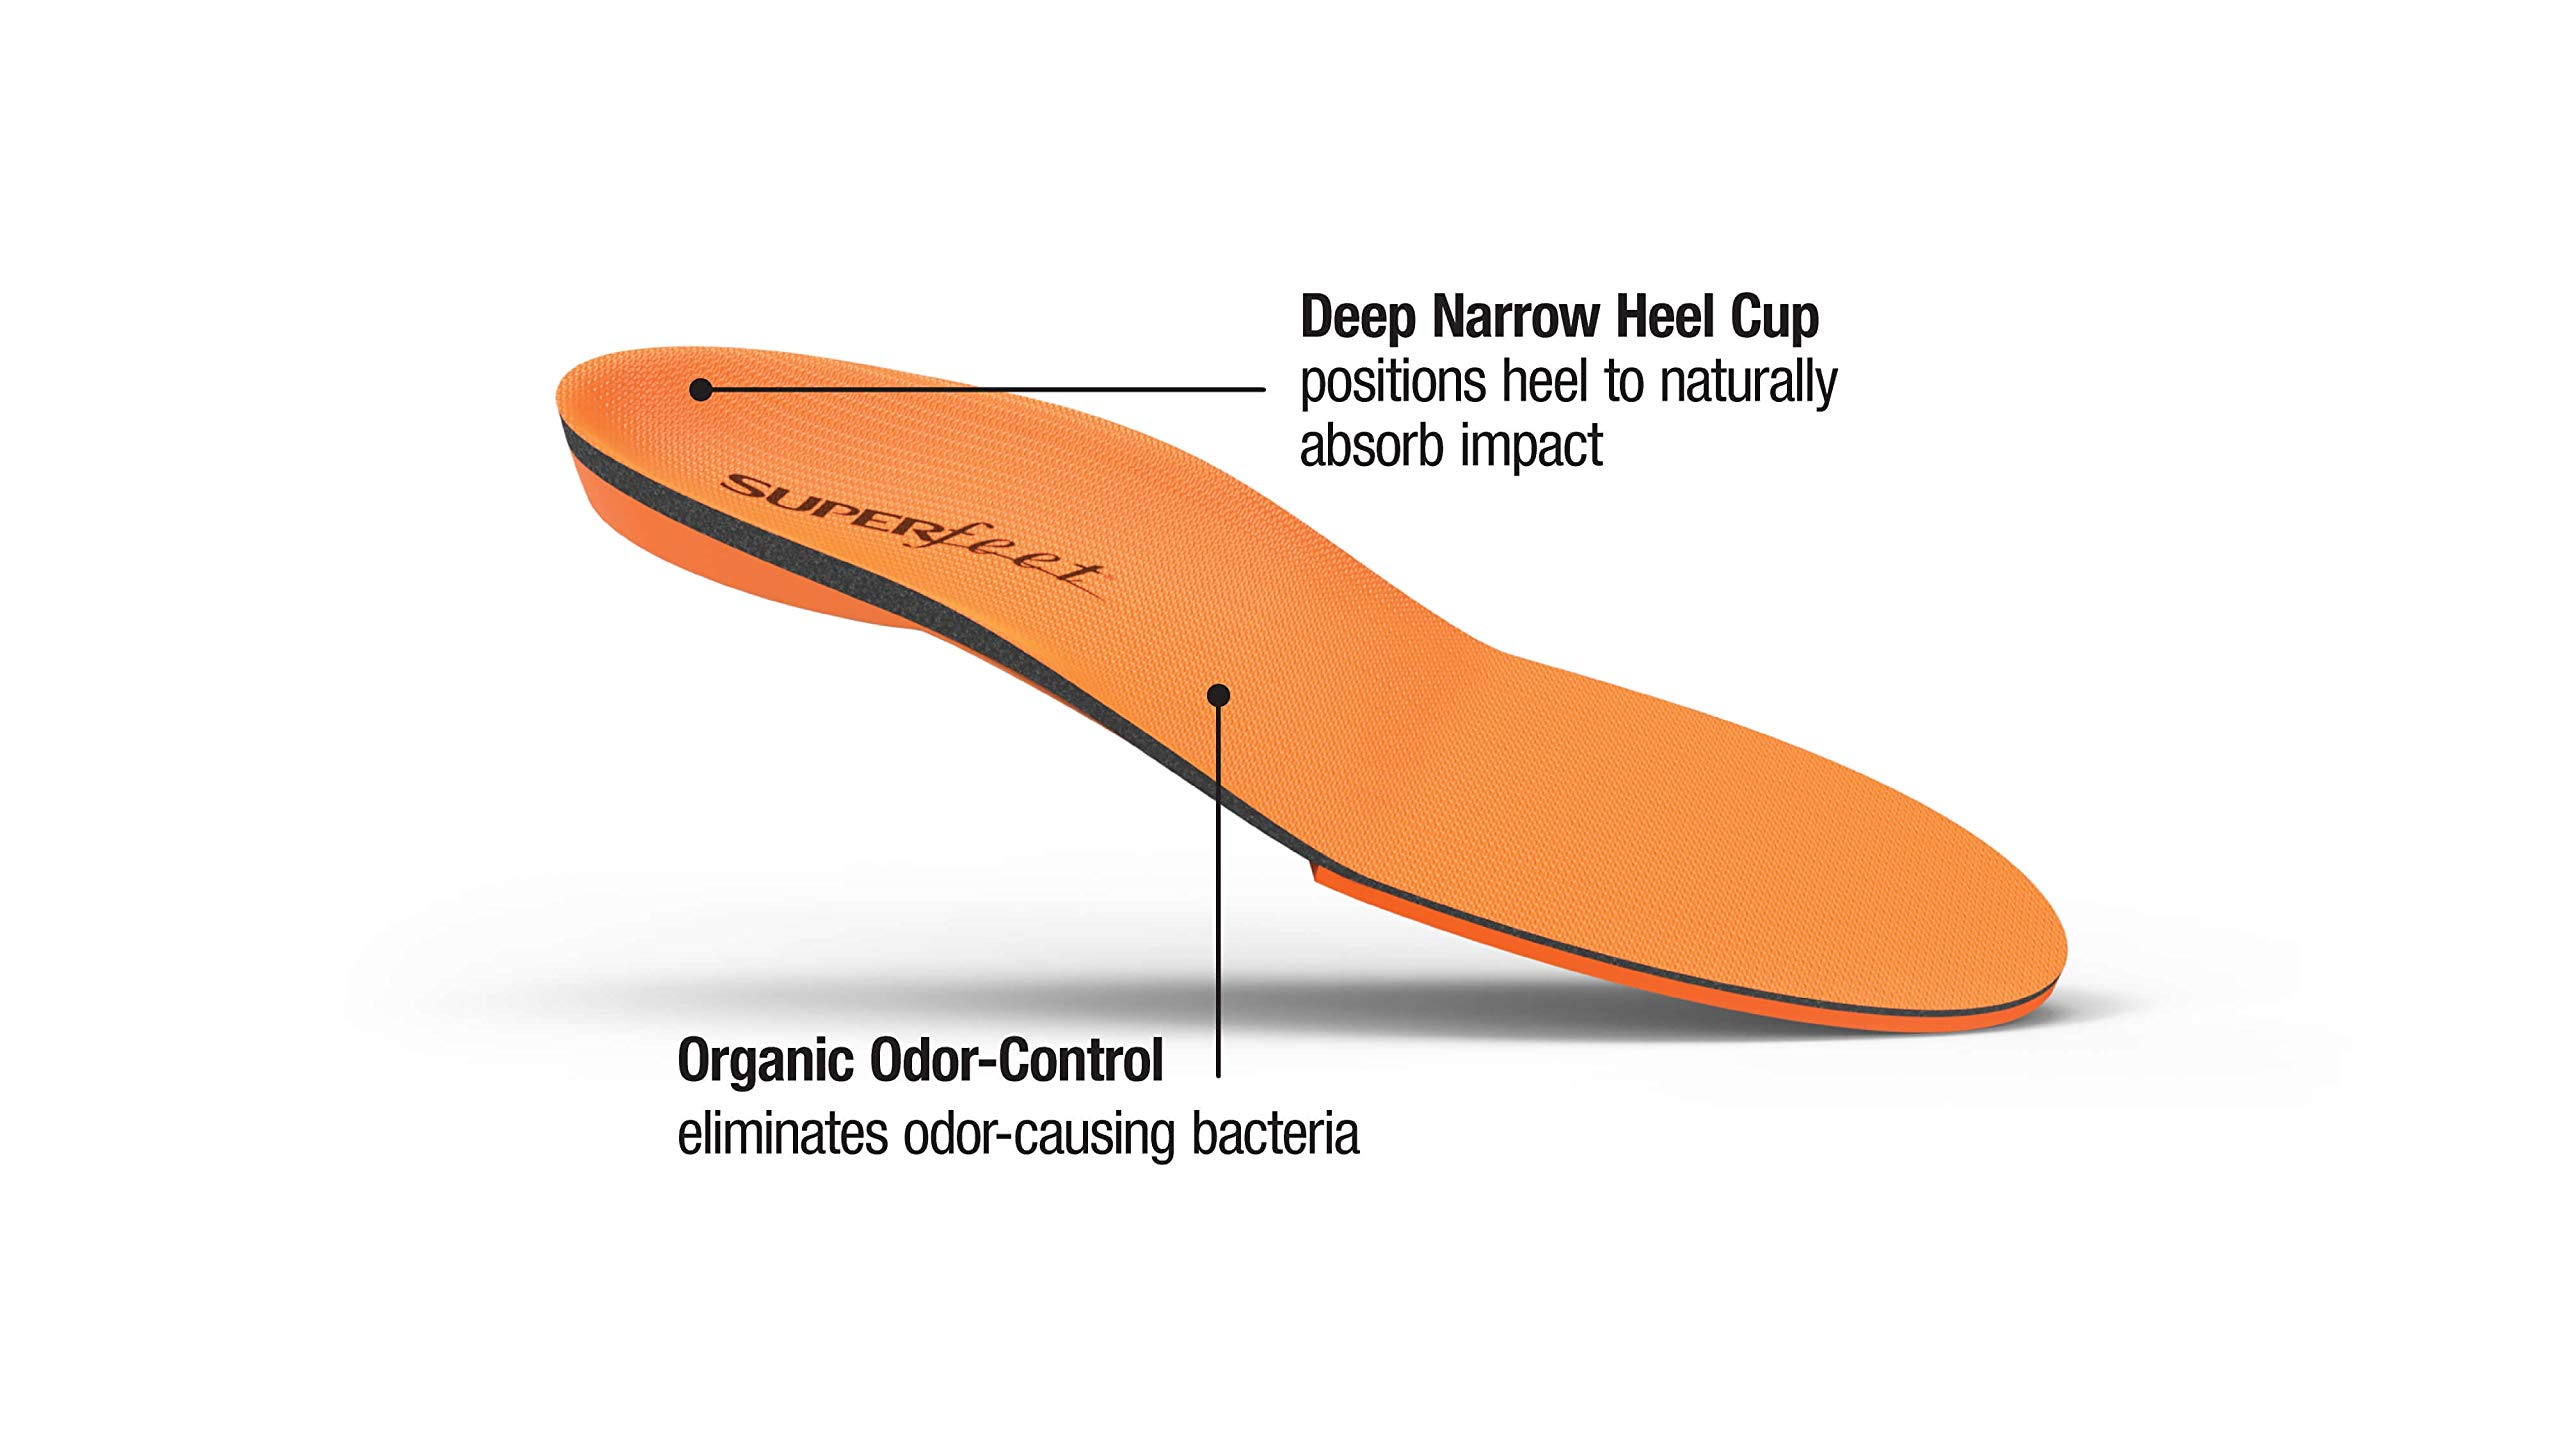 Superfeet ORANGE Insoles, High Arch Support and Forefoot Cushion Orthotic Insole for Anti-fatigue, Unisex, Orange, XXX-Large/H: 16.5+ Wmns/15.5 - 17 Mens by Superfeet (Image #3)